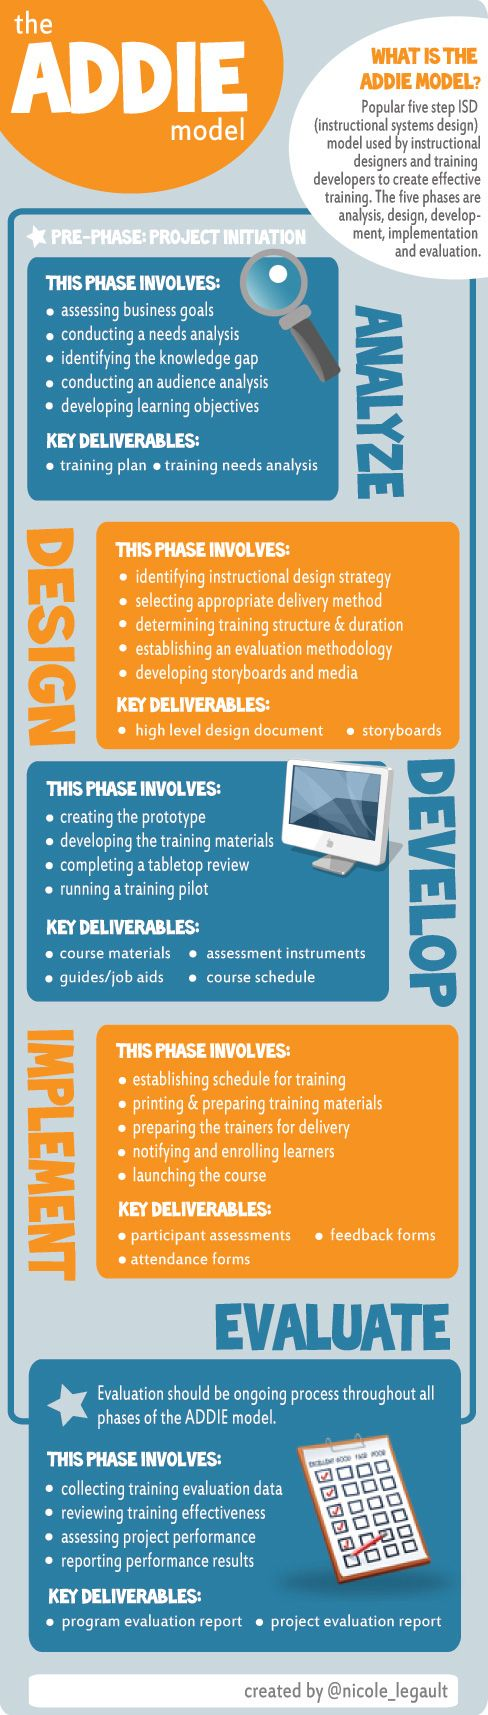 E learning poster designs - The Addie Instructional Design Model As An Infographic